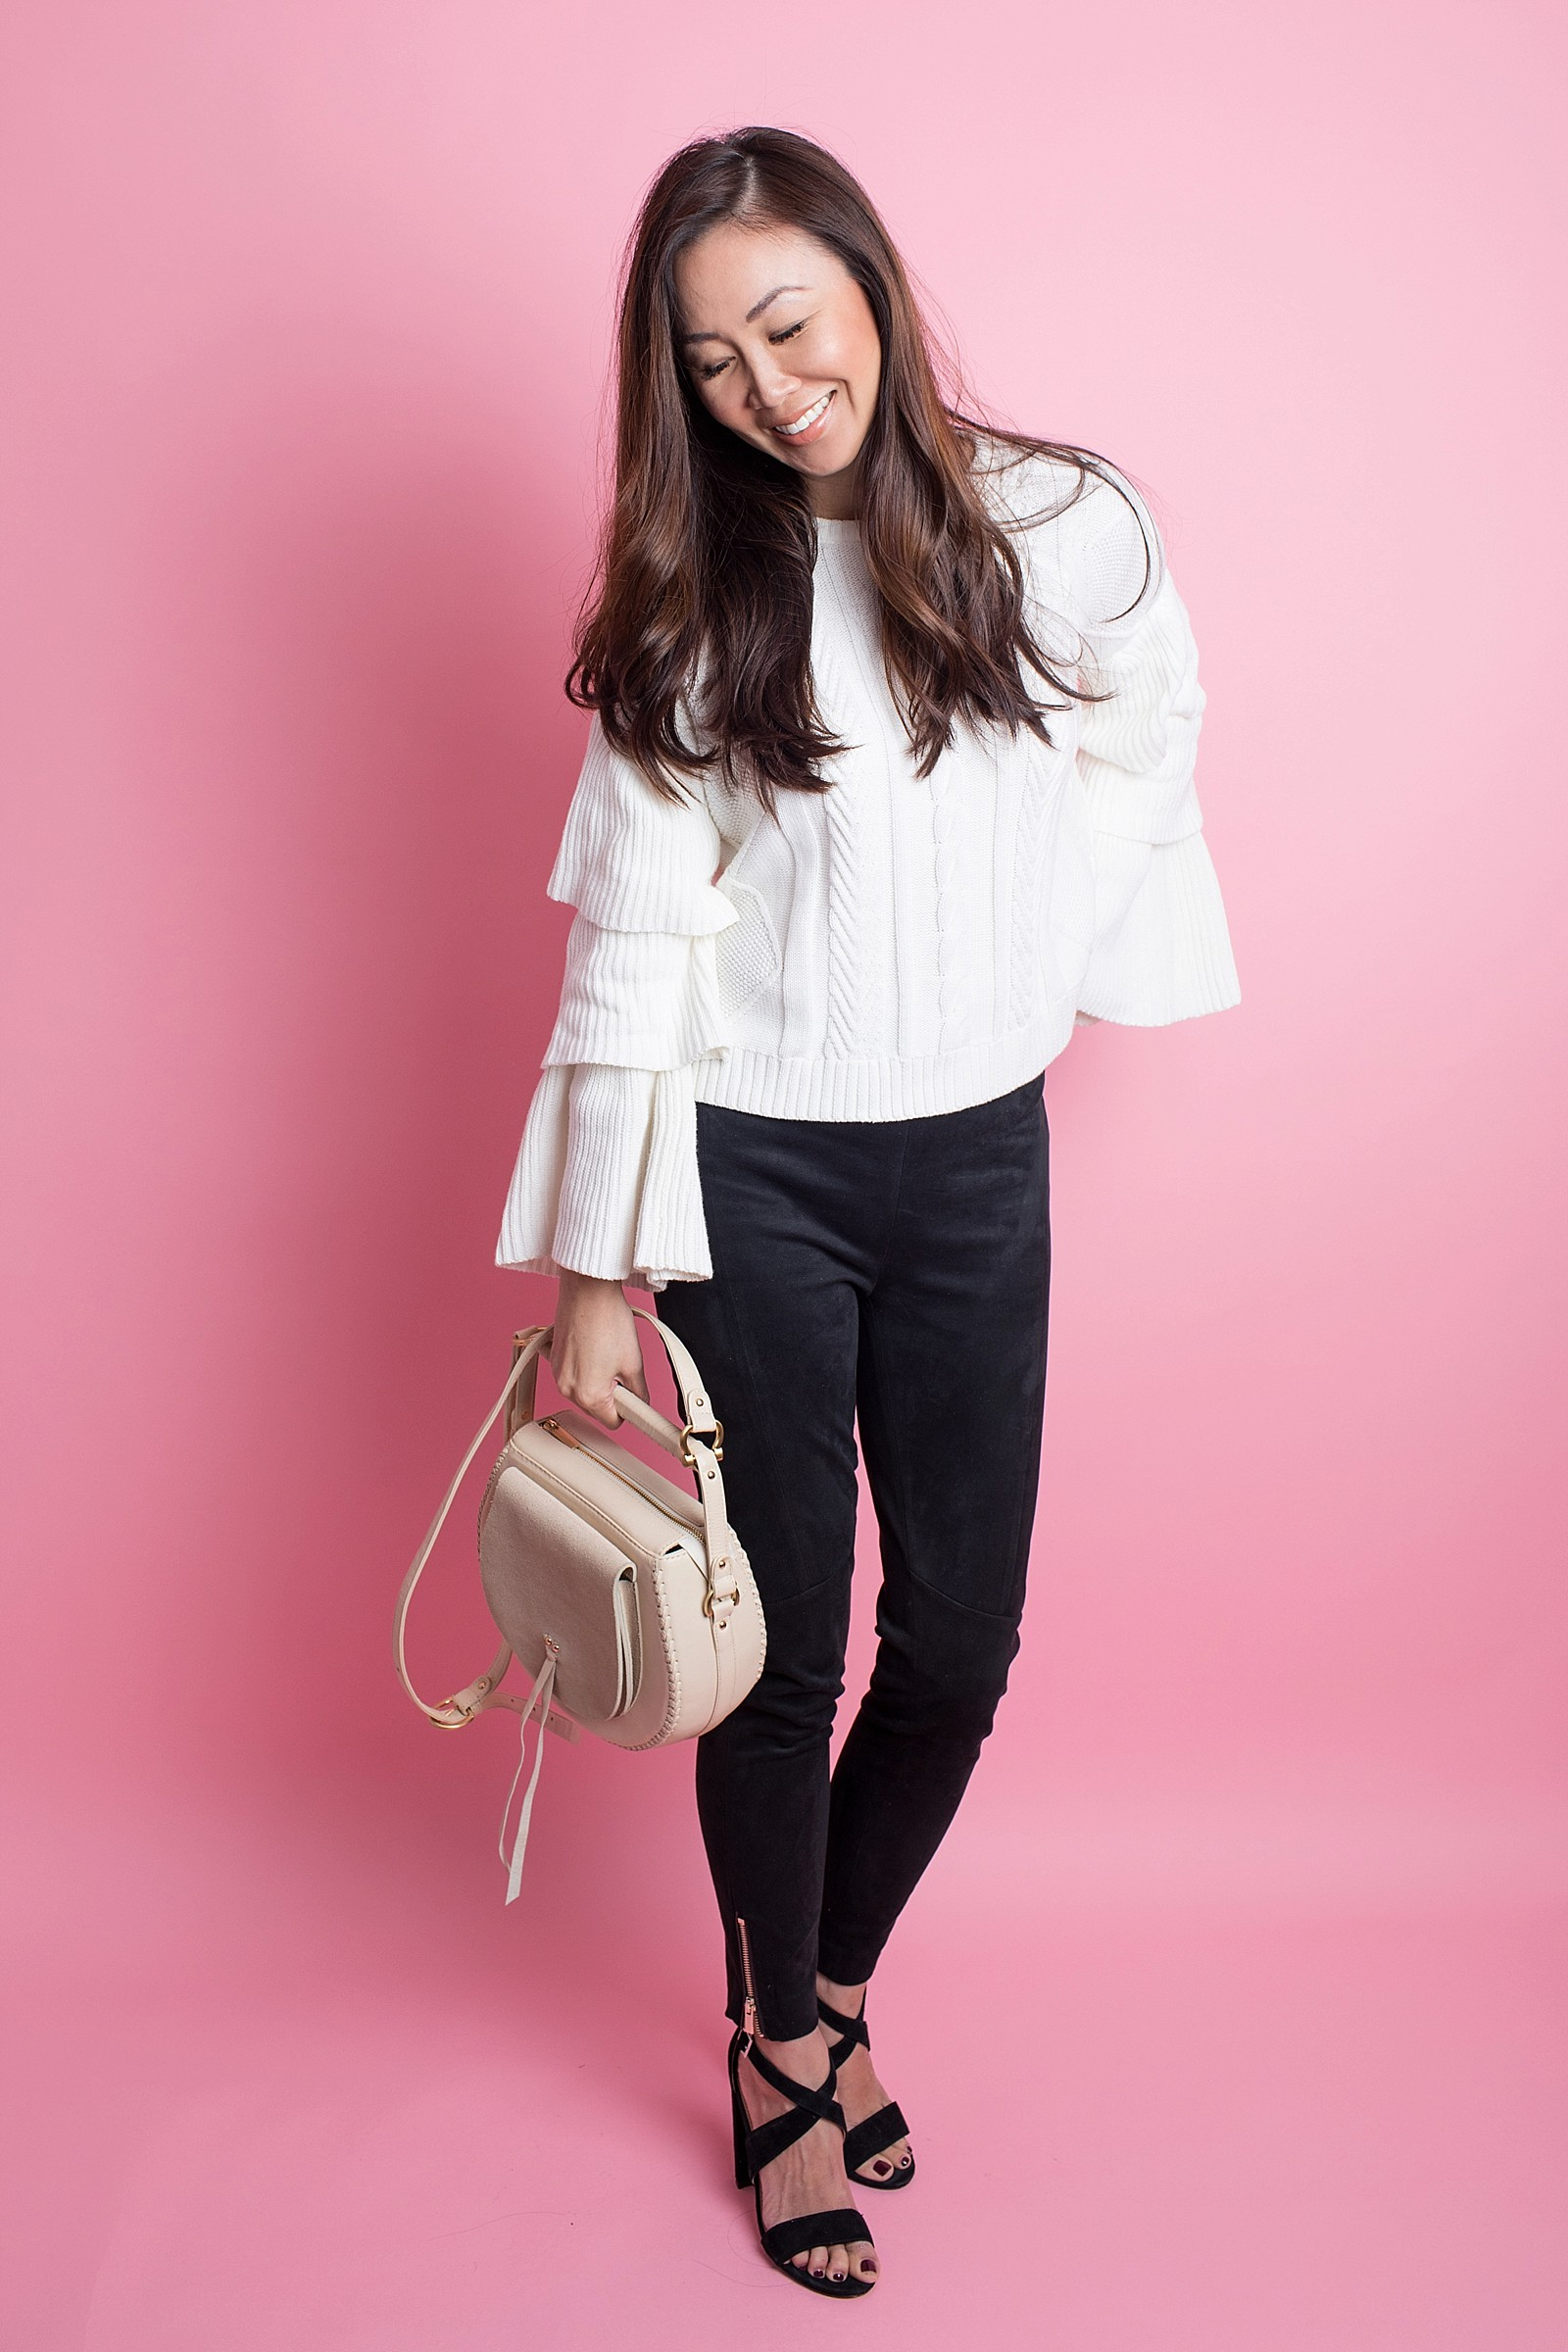 fashion blogger phoenix diana Elizabeth neutral outfit ruffled top sleeves